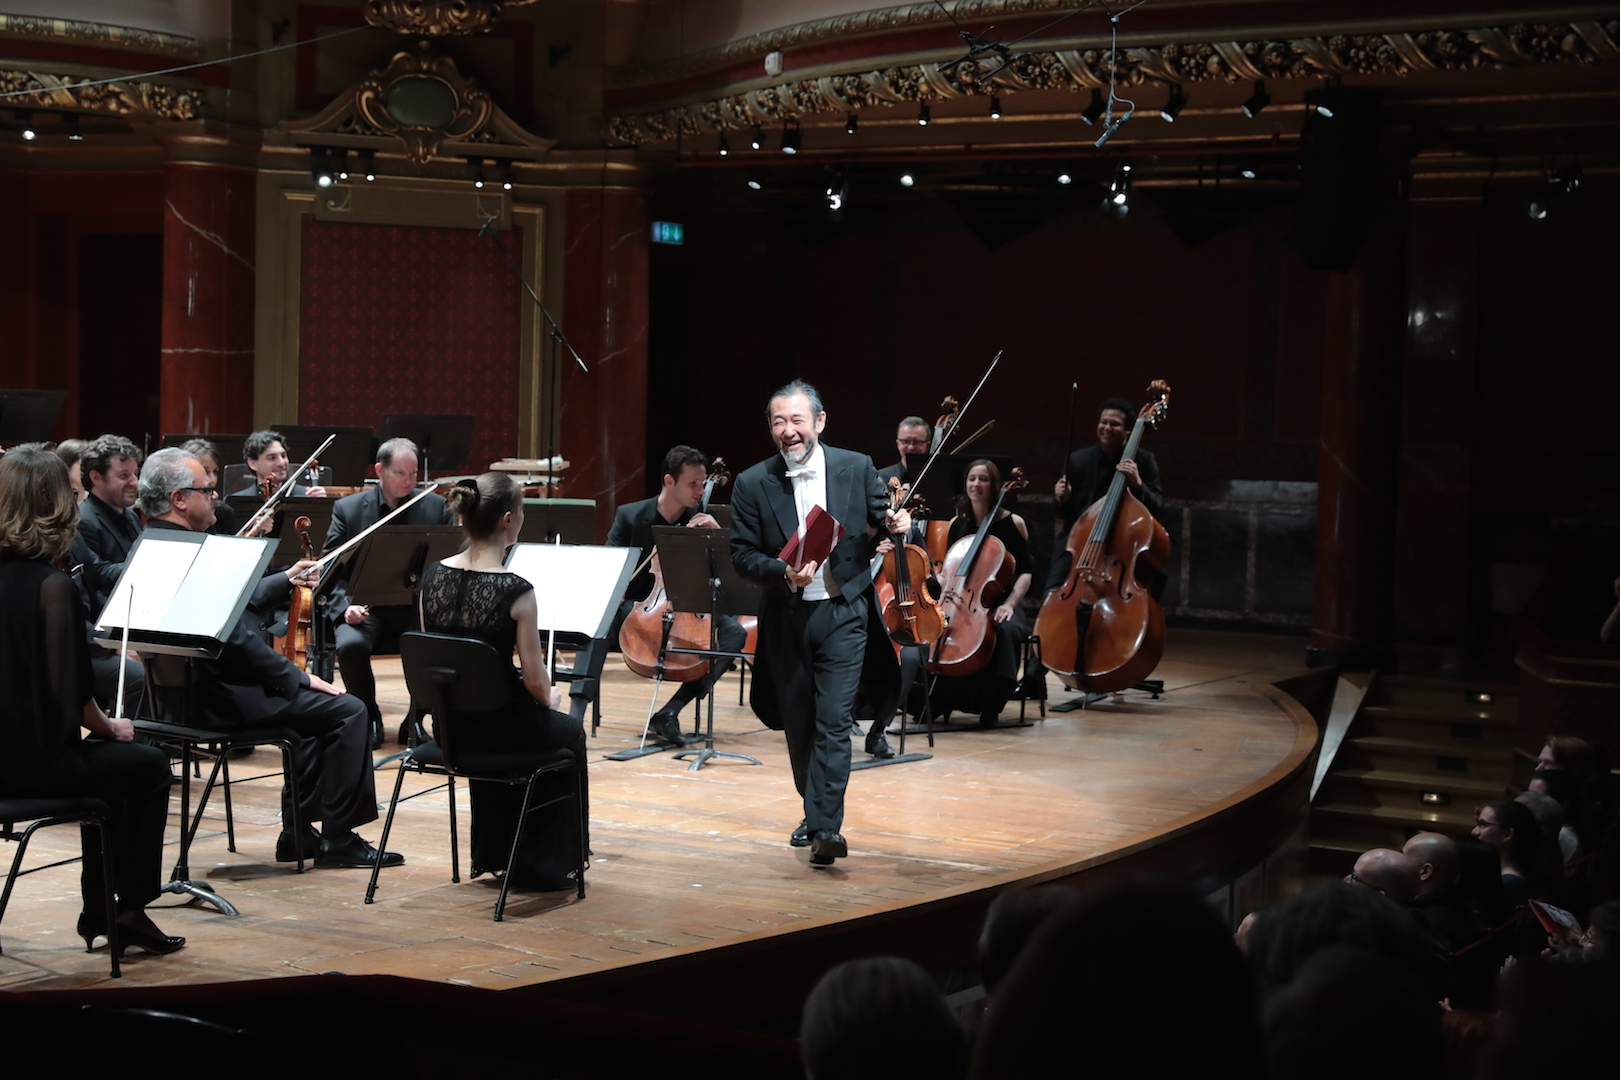 Concours Menuhin Victoria_Hall Gala ouverture@Nathalie Mastail-Hirosawa.JPG